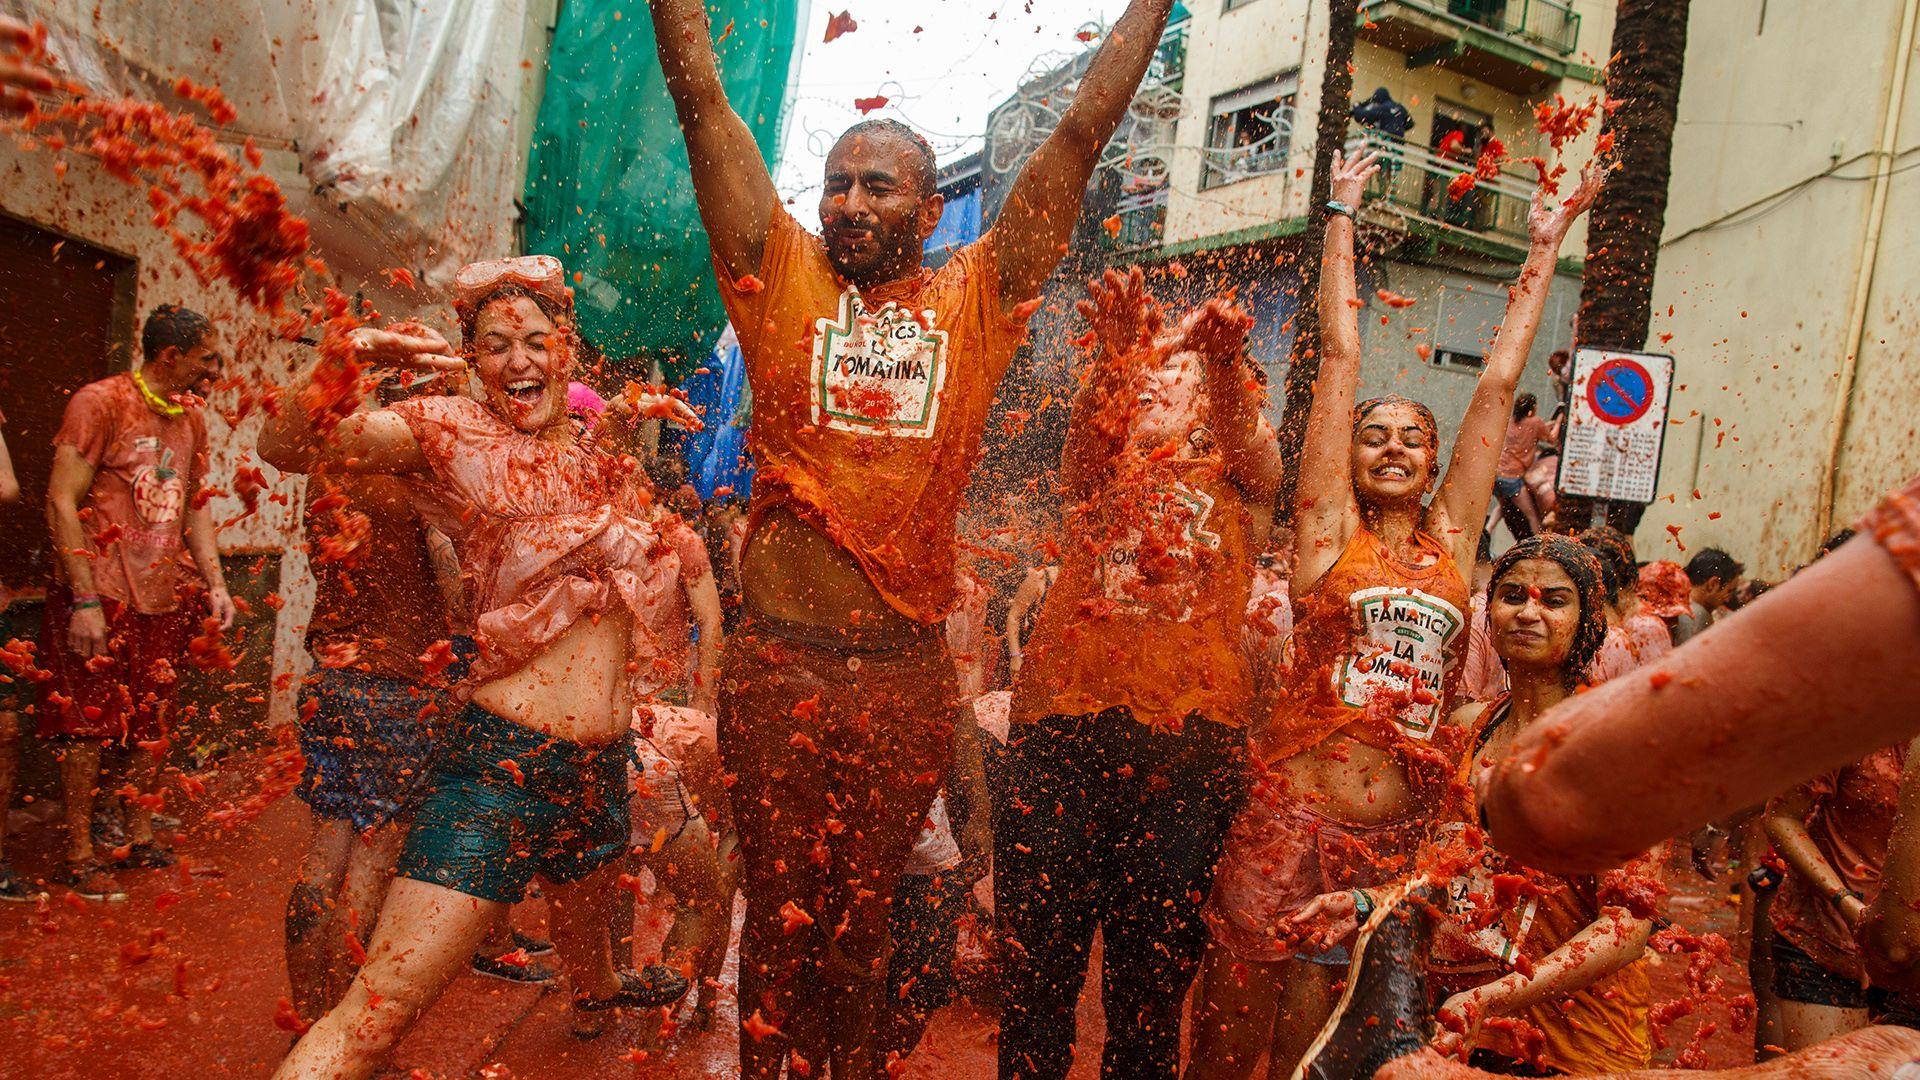 La Tomatina: The World's Largest Food Fight